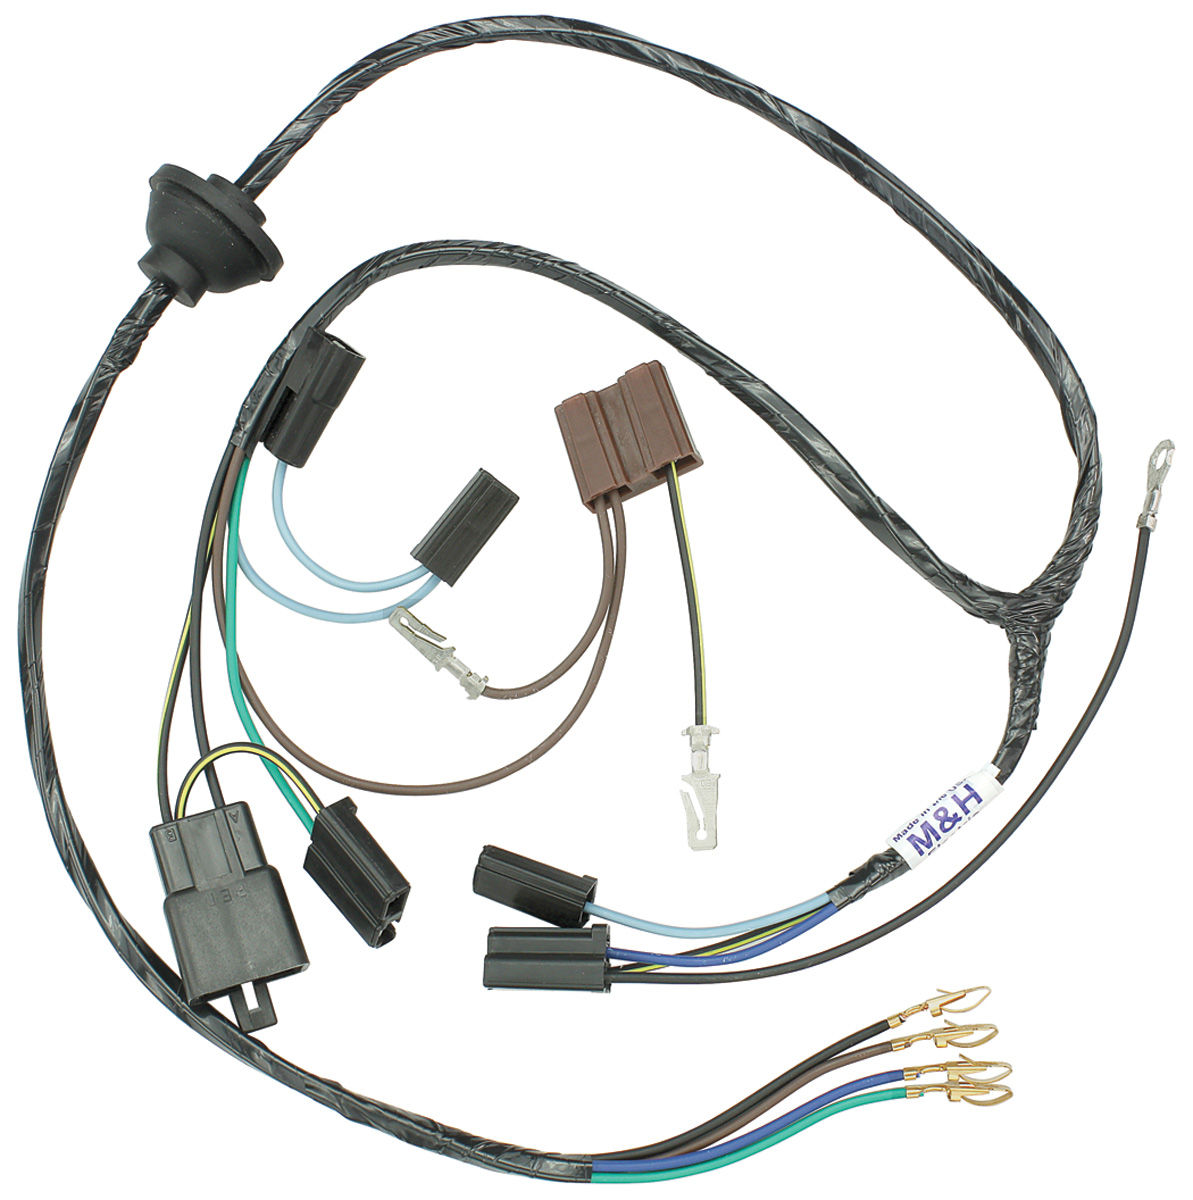 1971 chevelle wiper wiring diagram 99 club car m andh 1970 motor harness electro tip demand